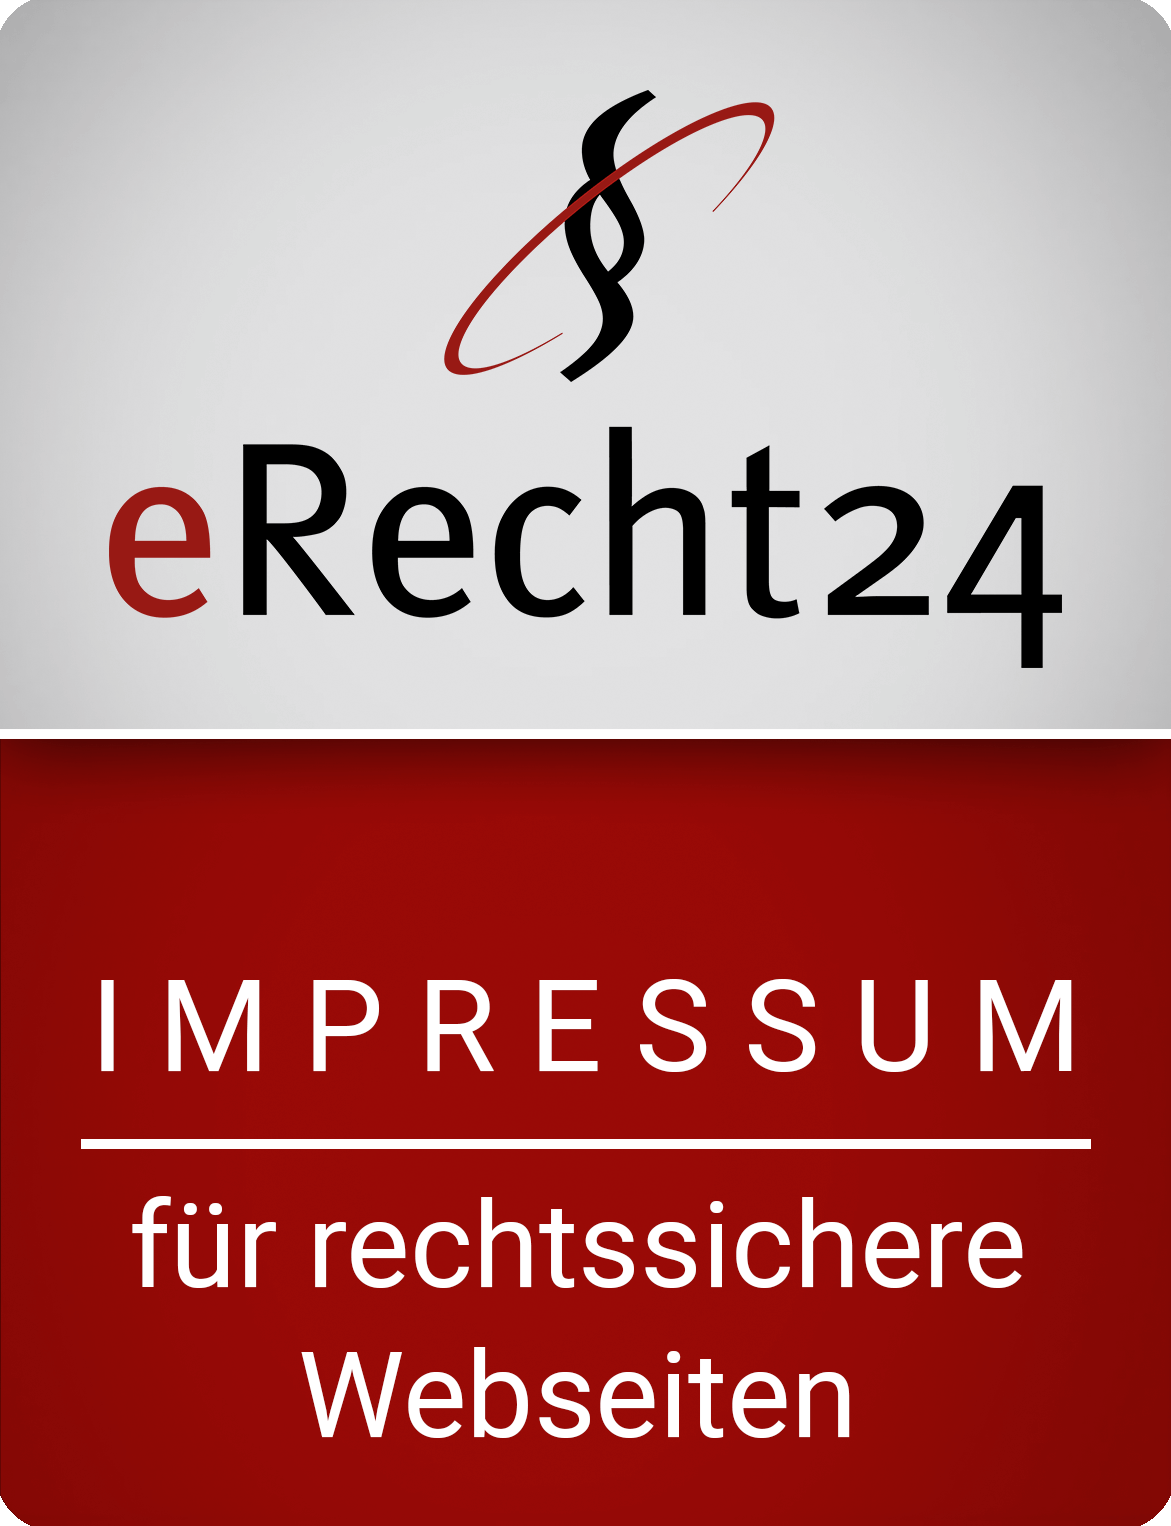 erecht24 siegel impressum rot gross